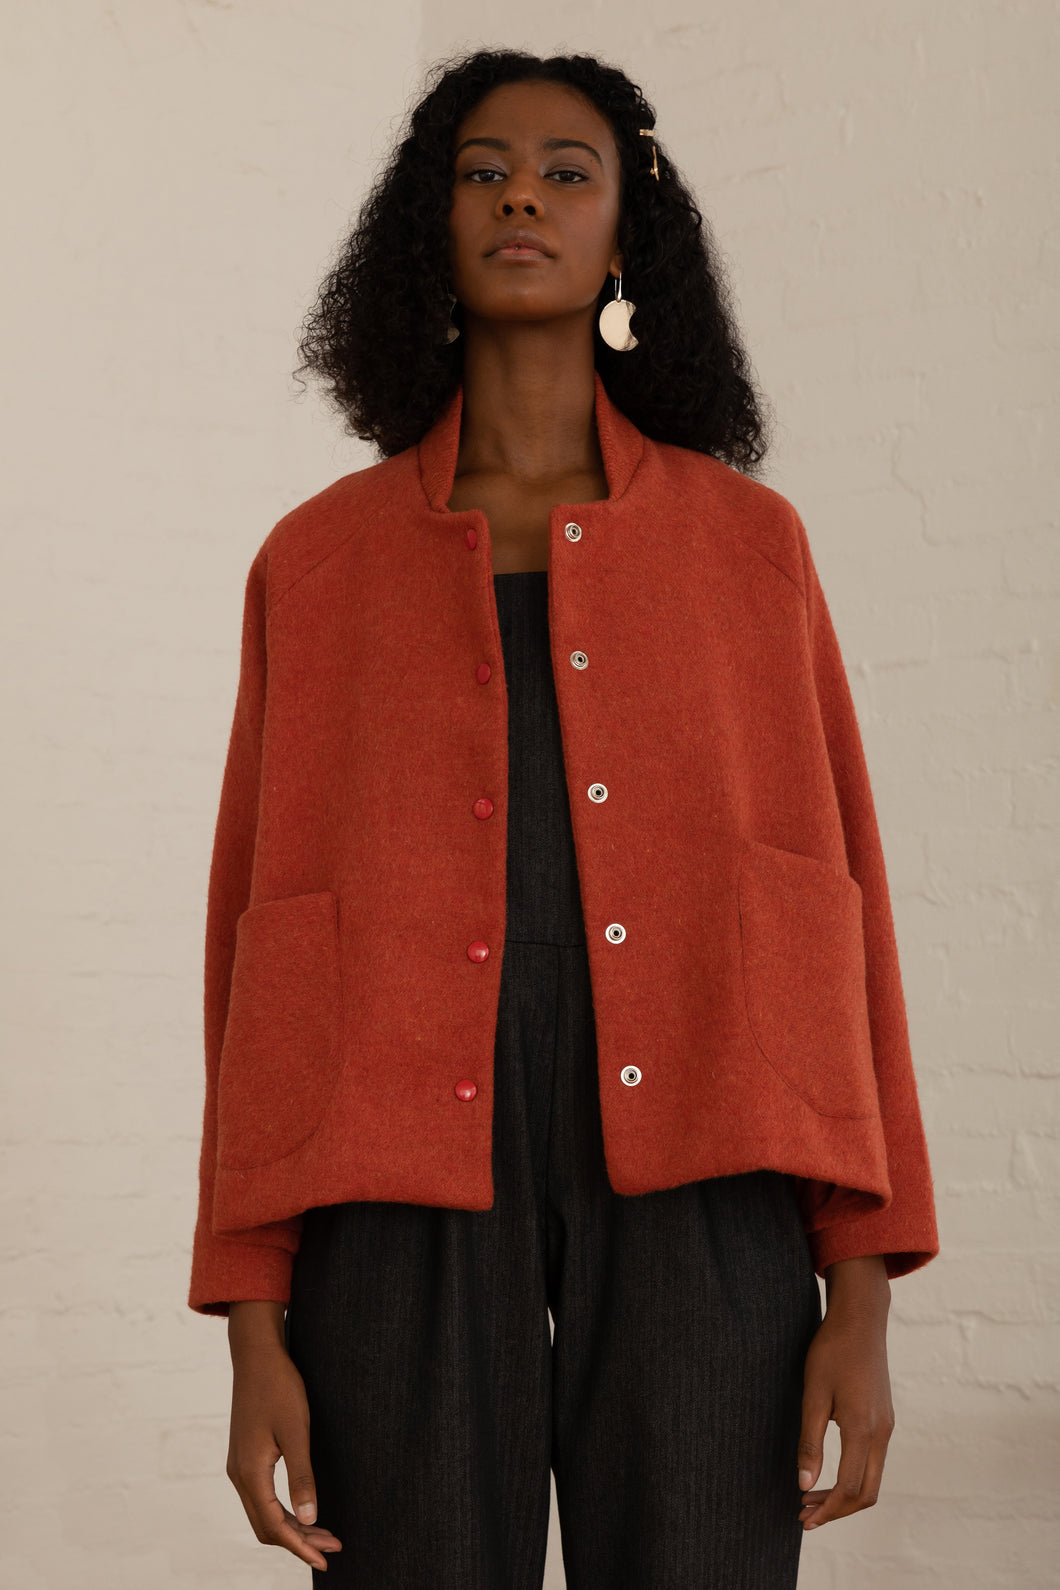 Kona wool Jacket in burnt orange